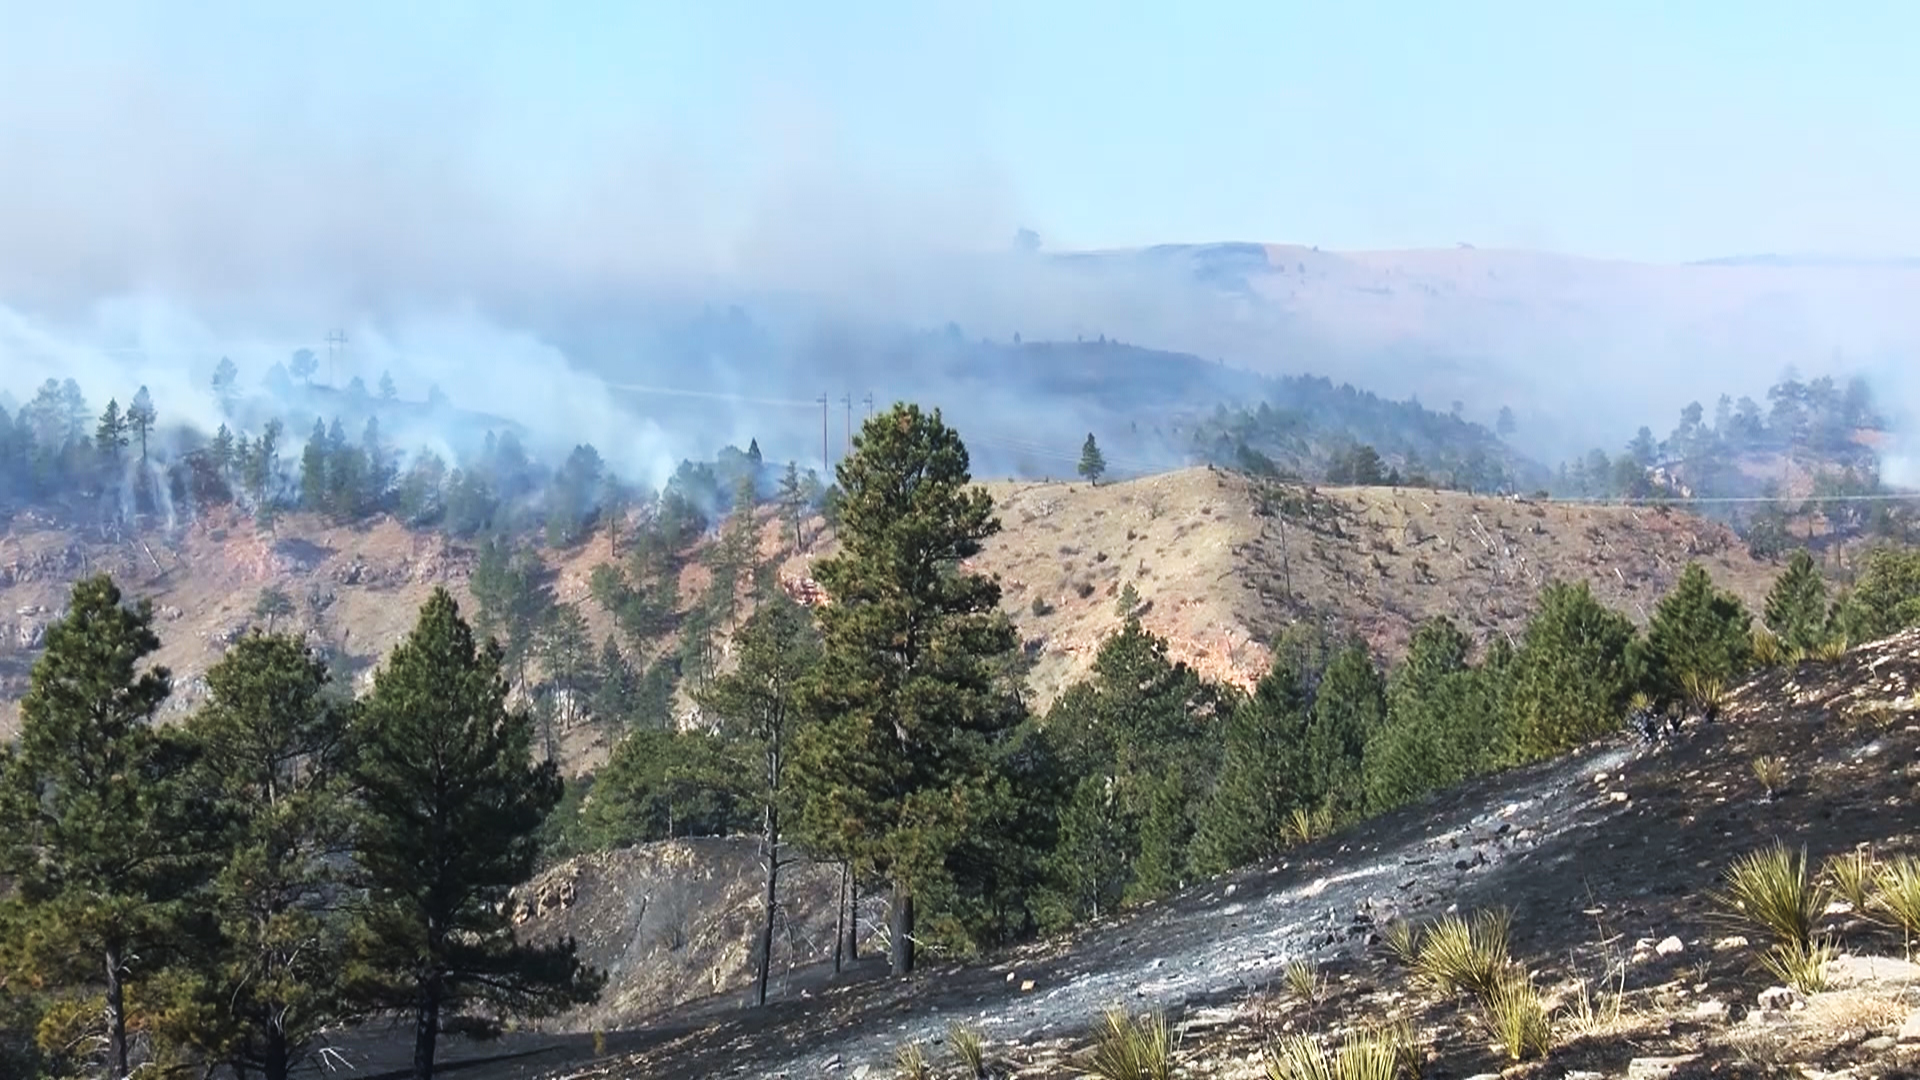 Smoke over area burned by Schroeder fire